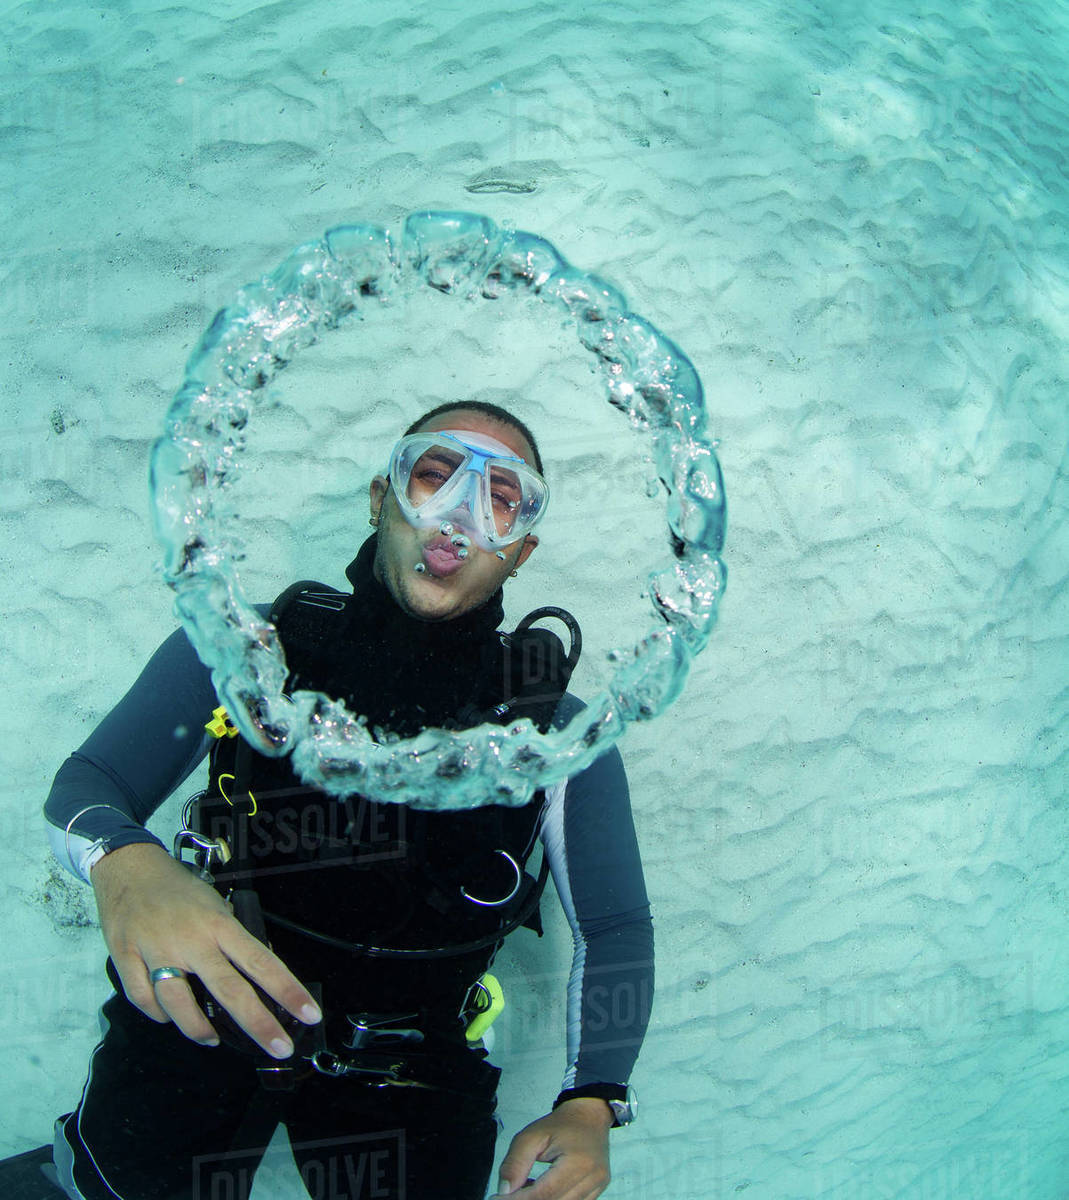 kalimantan rings diver blowing underwater scuba stock island bubble photo at maratua